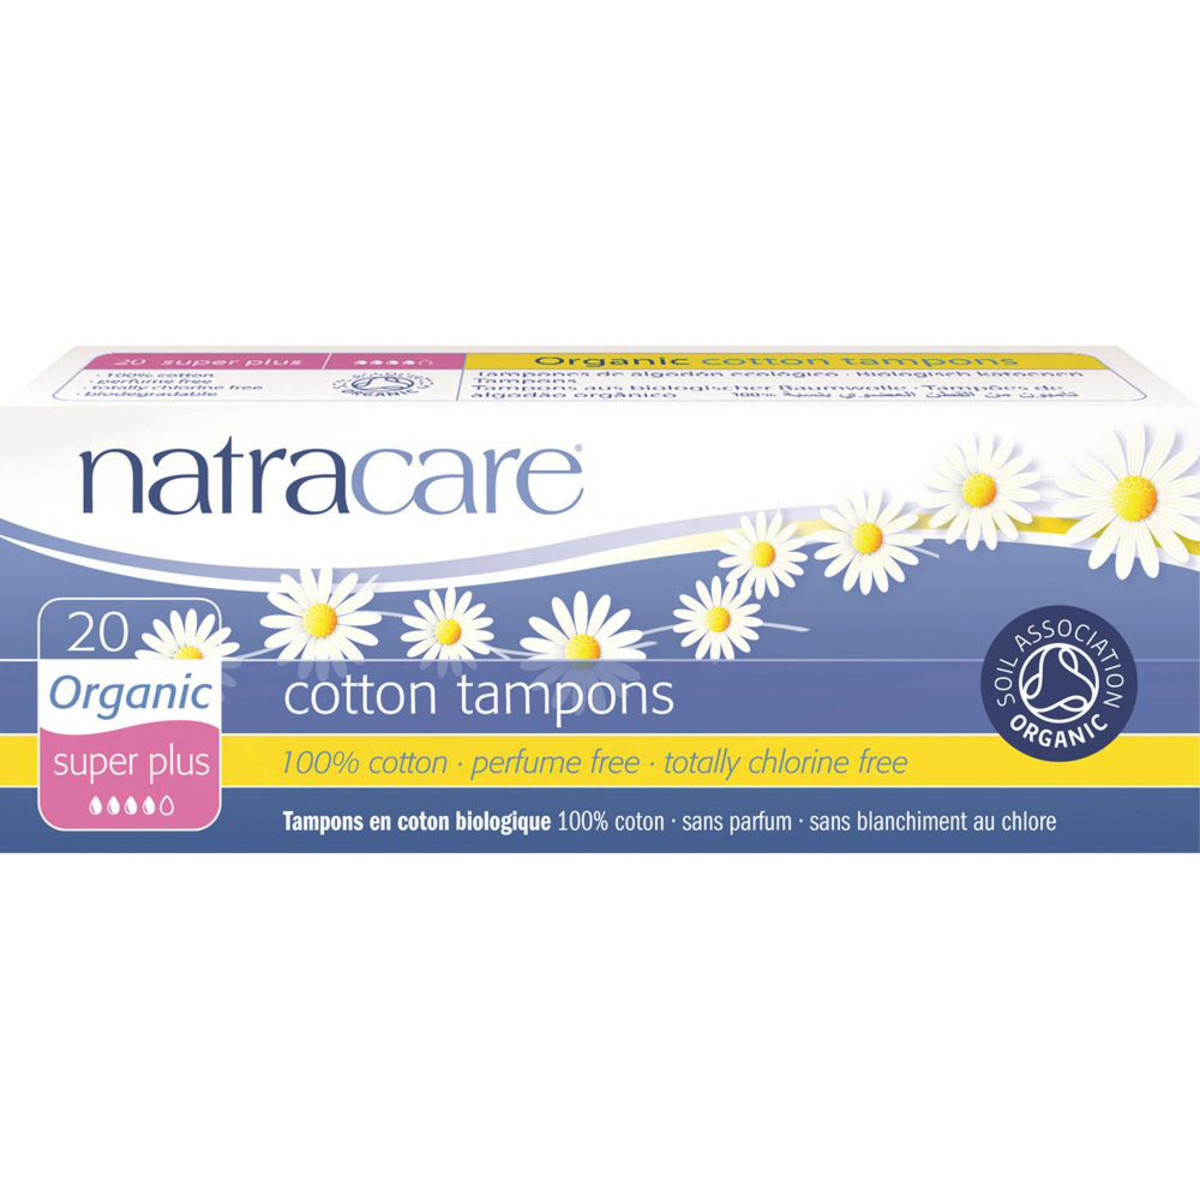 NATRACARE COTTON TAMPONS SUPER PLUS ORGANIC 20 PACK